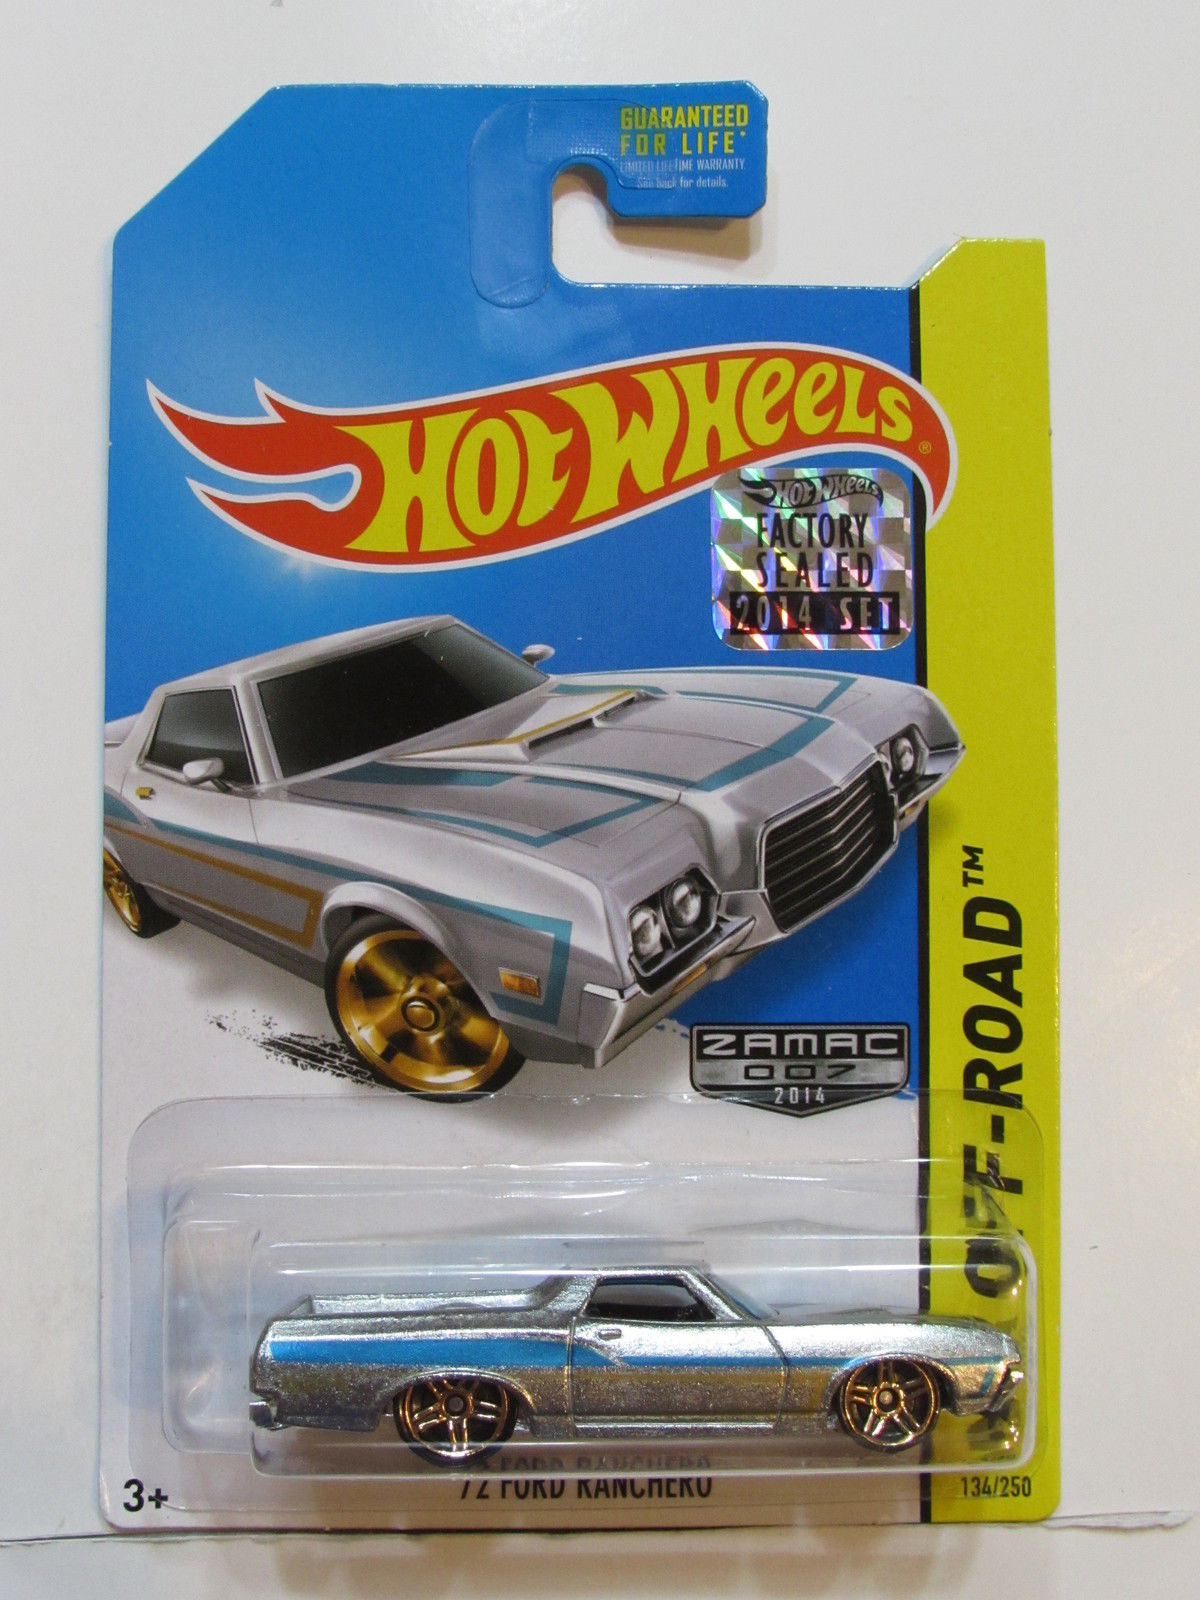 HOT WHEELS 2014 HW RACE '72 FORD RANCHERO ZAMAC FACTORY SEALED